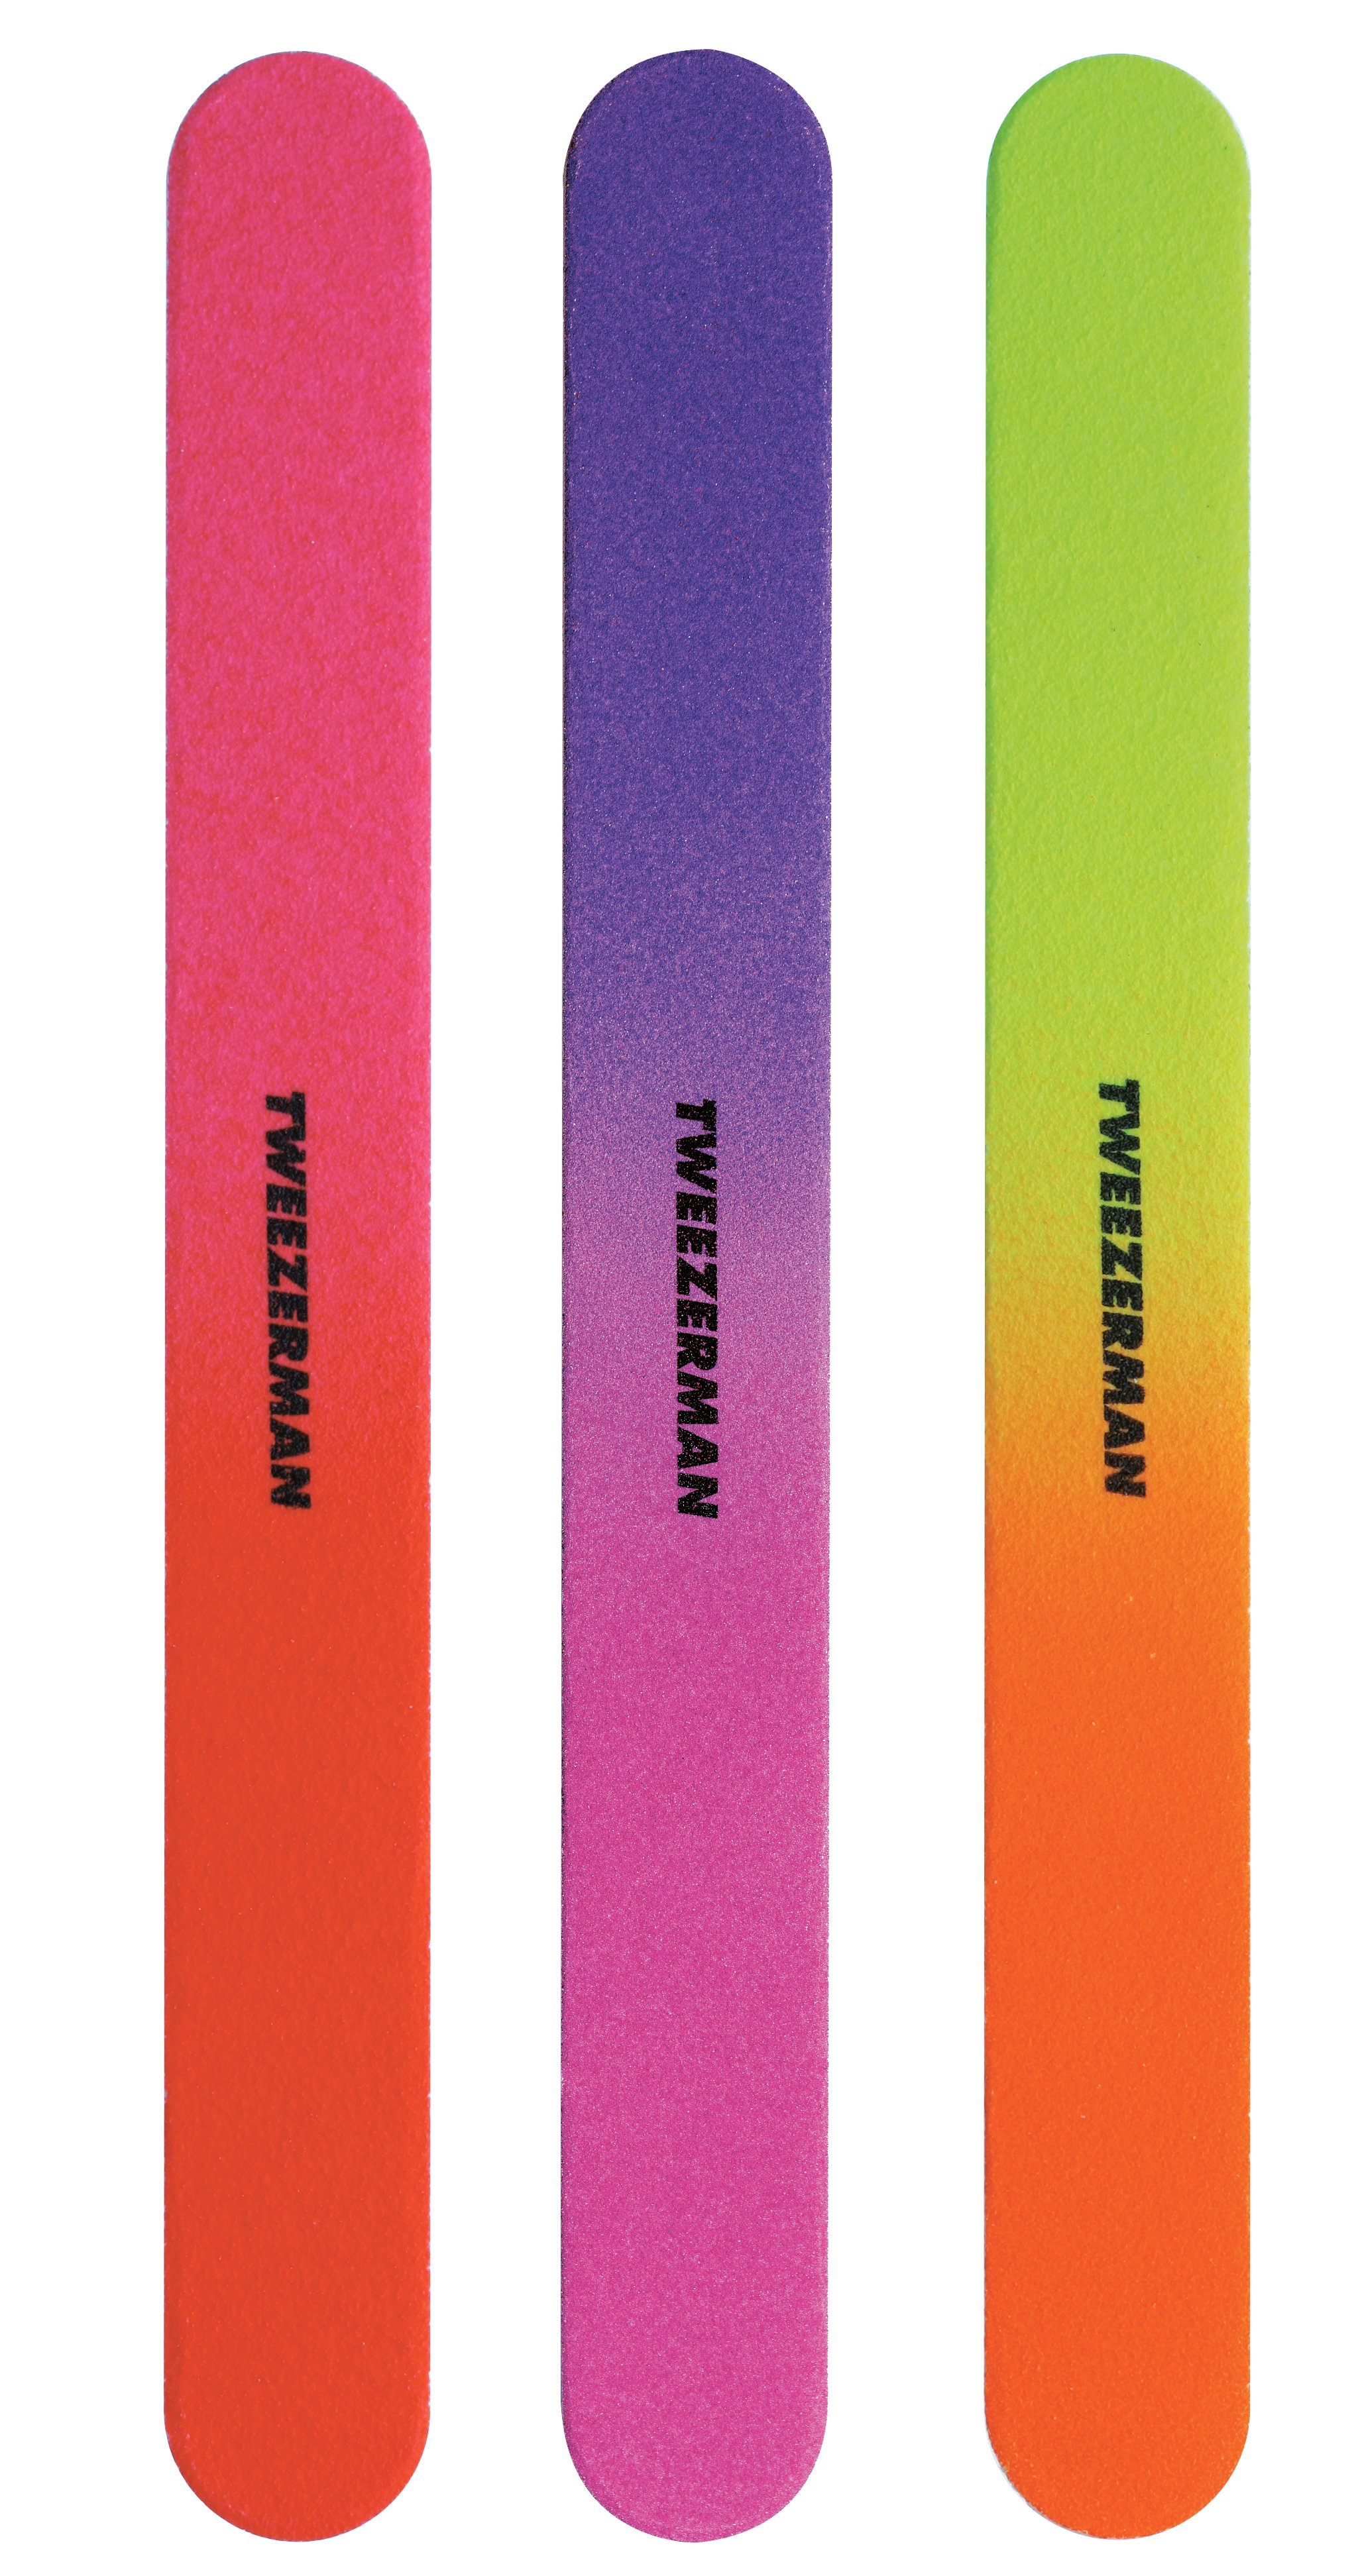 Tweezerman Filemate Neon Hot Nail File